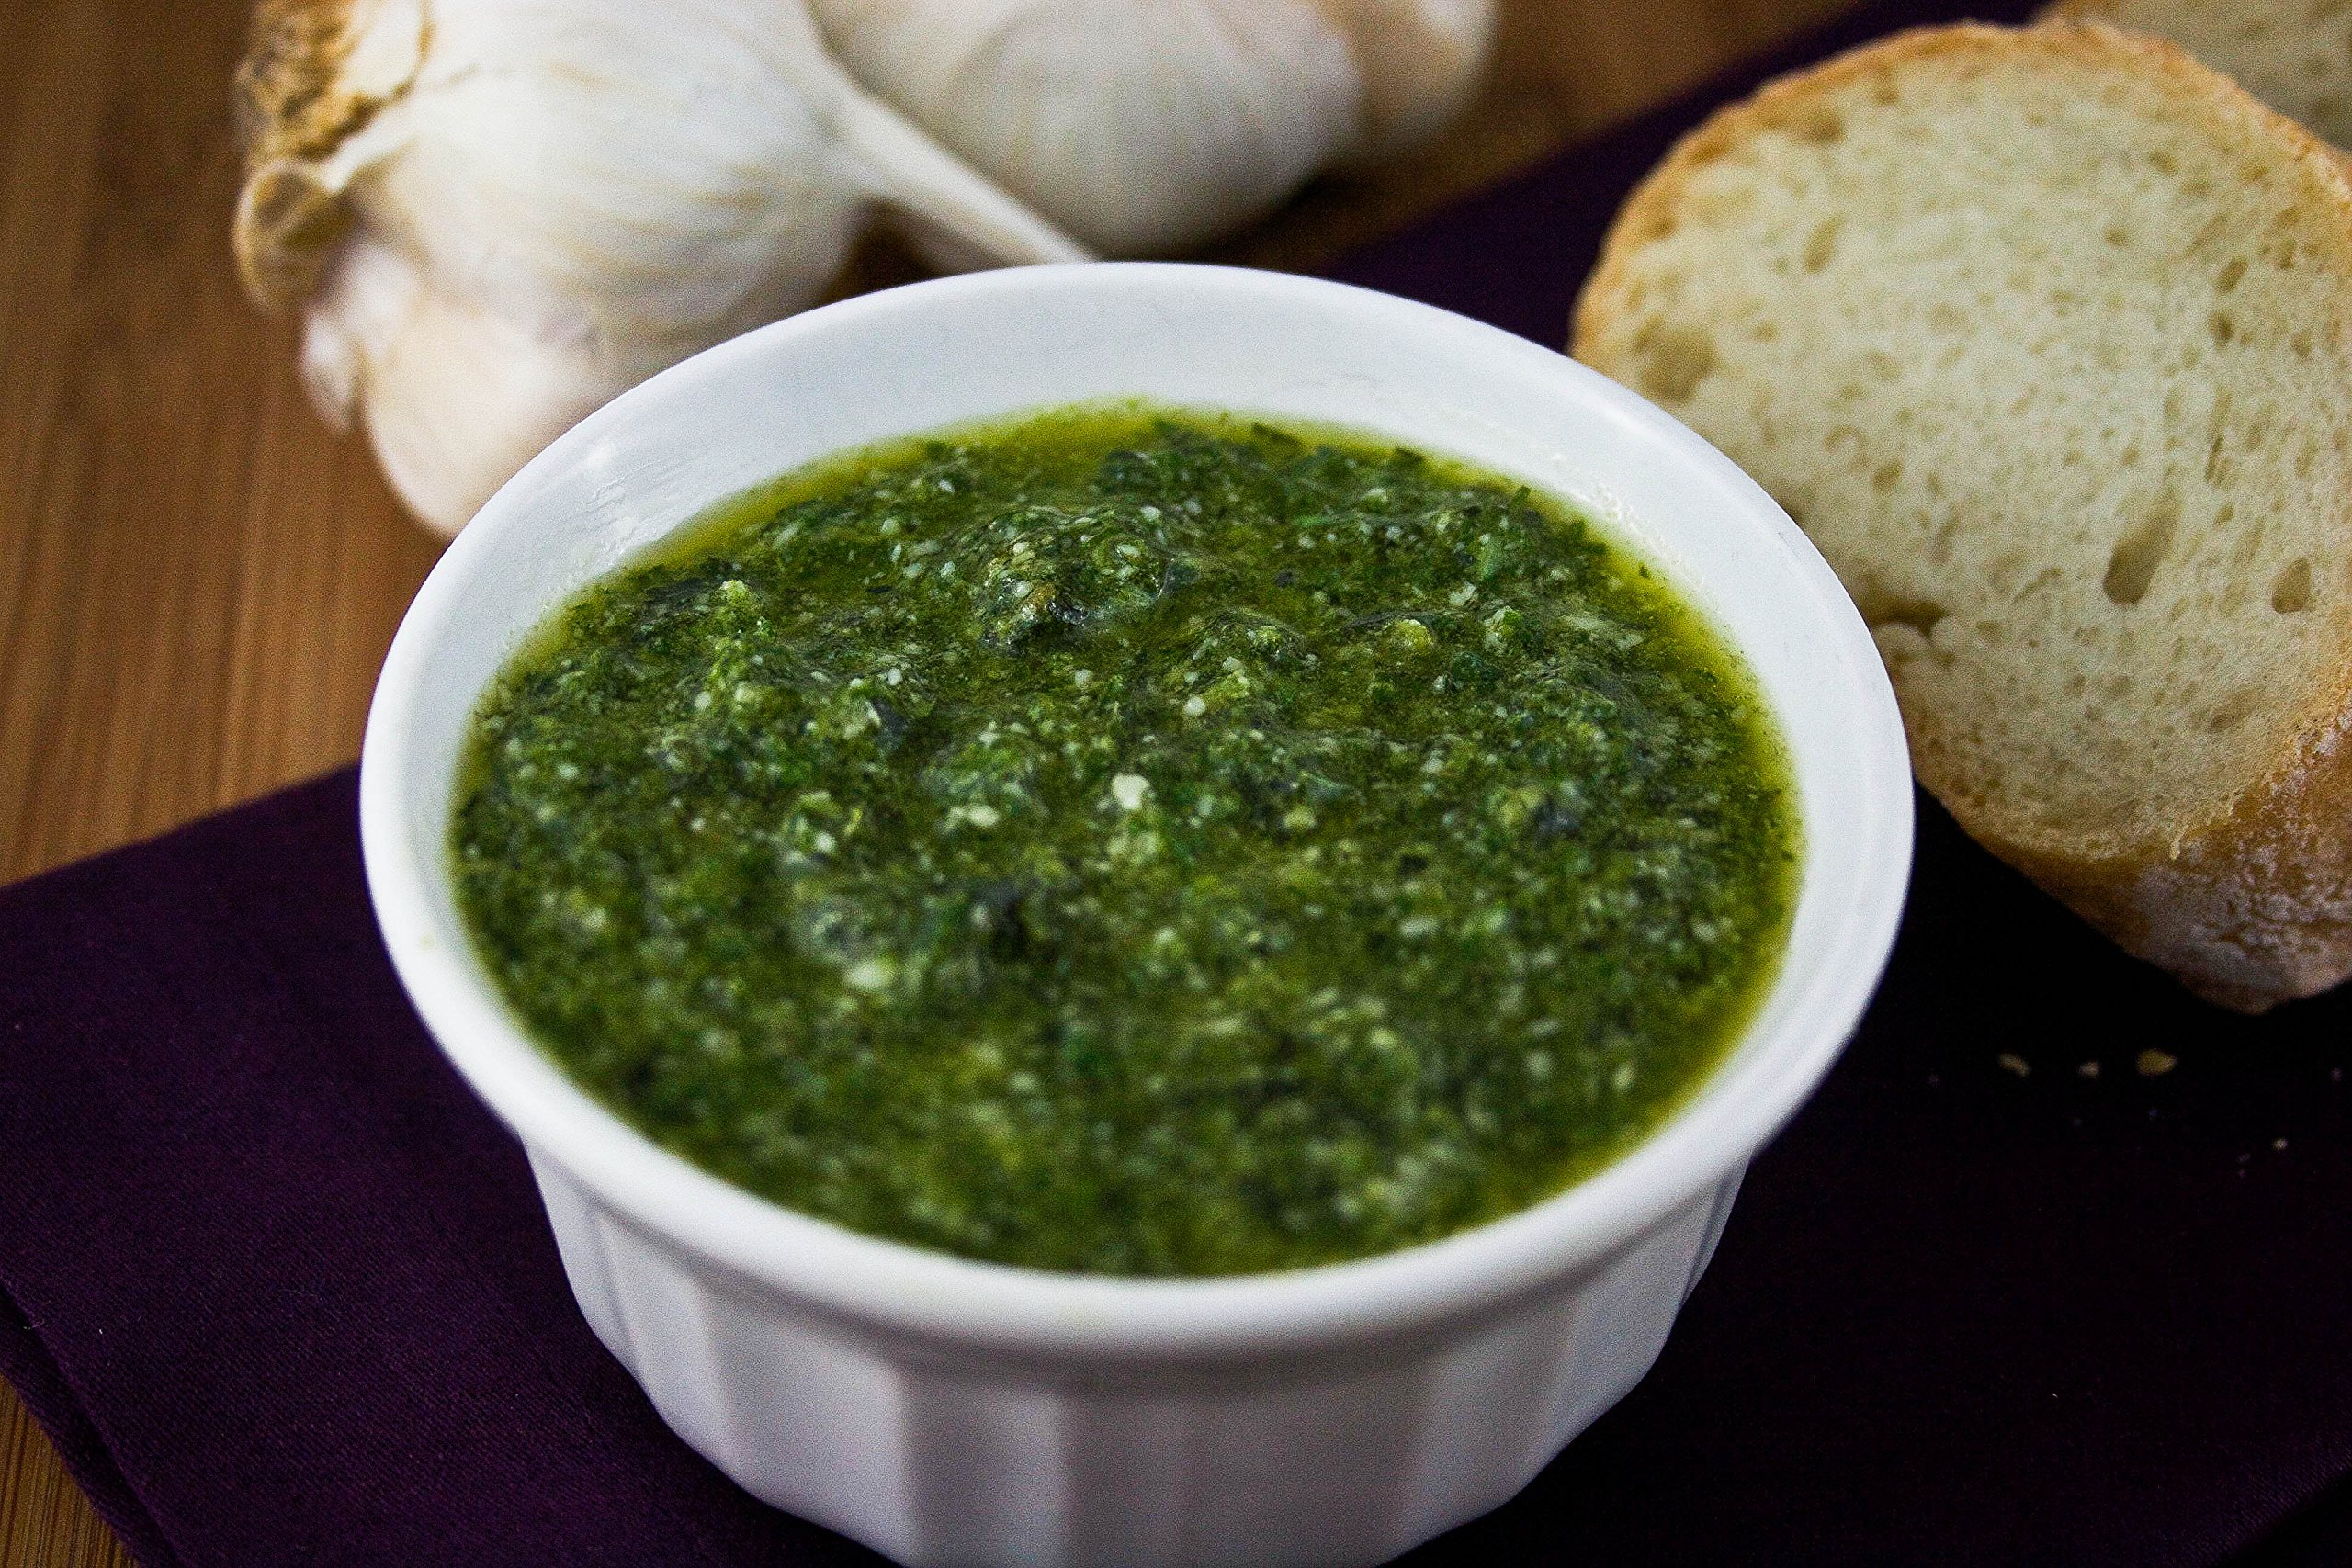 Common Sweet Basil Herb Seeds Many Sizes to 5LB USA Pesto Sale #13 (1.6 Million seeds, or 5 LB)